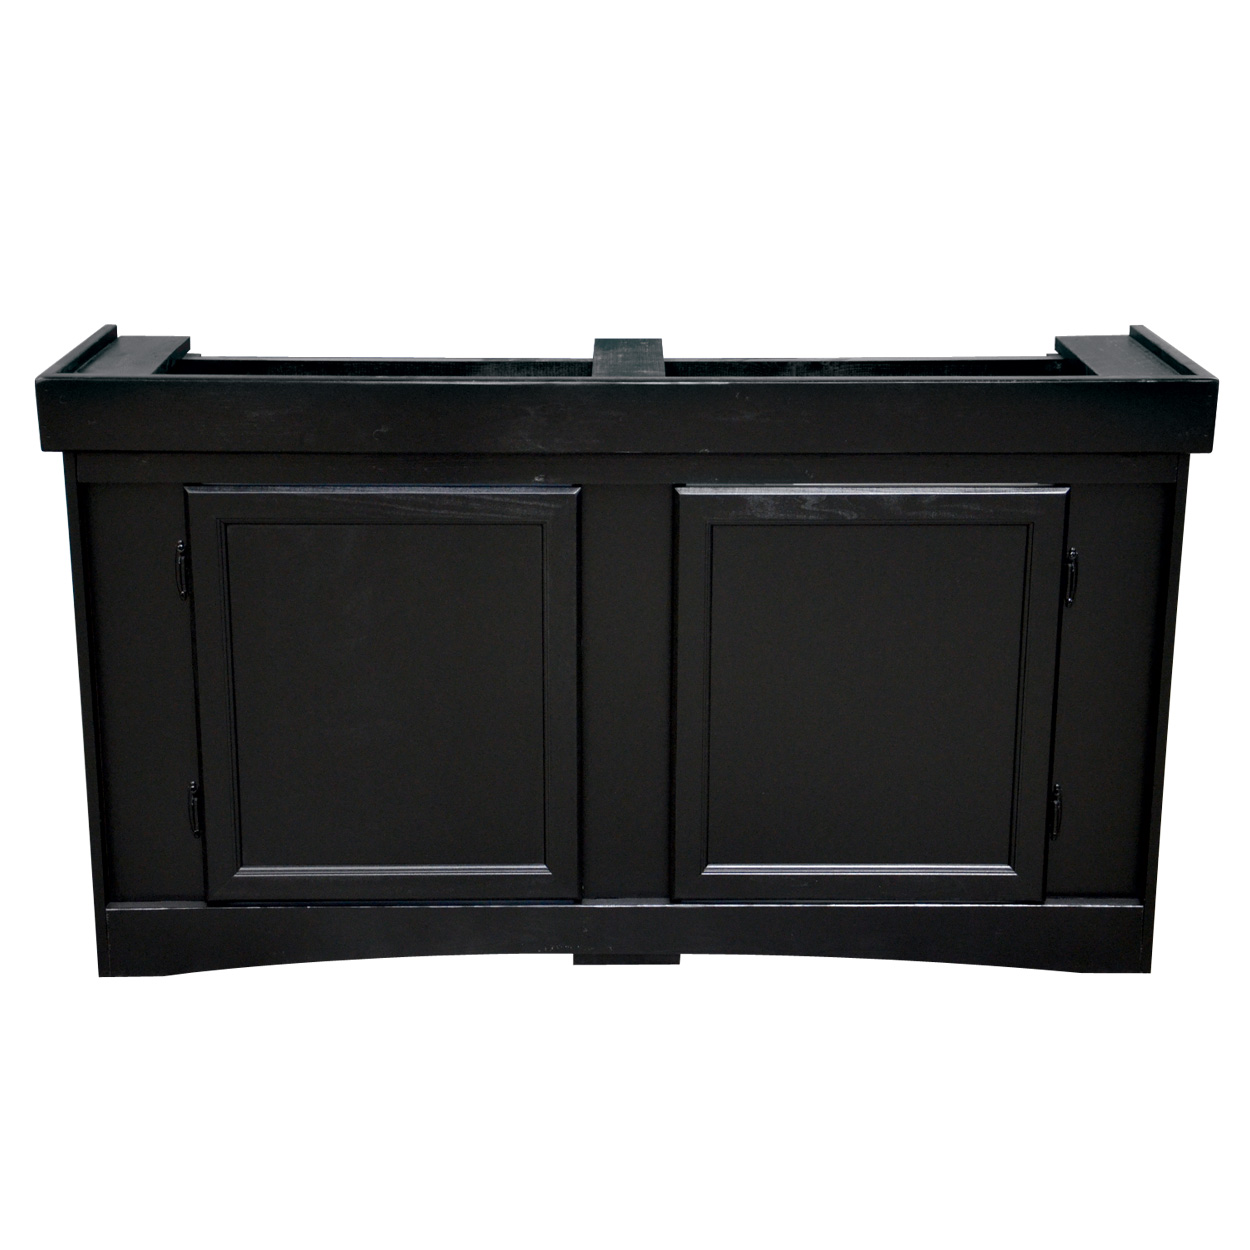 "Seapora Monarch 48x13"" stand in black"